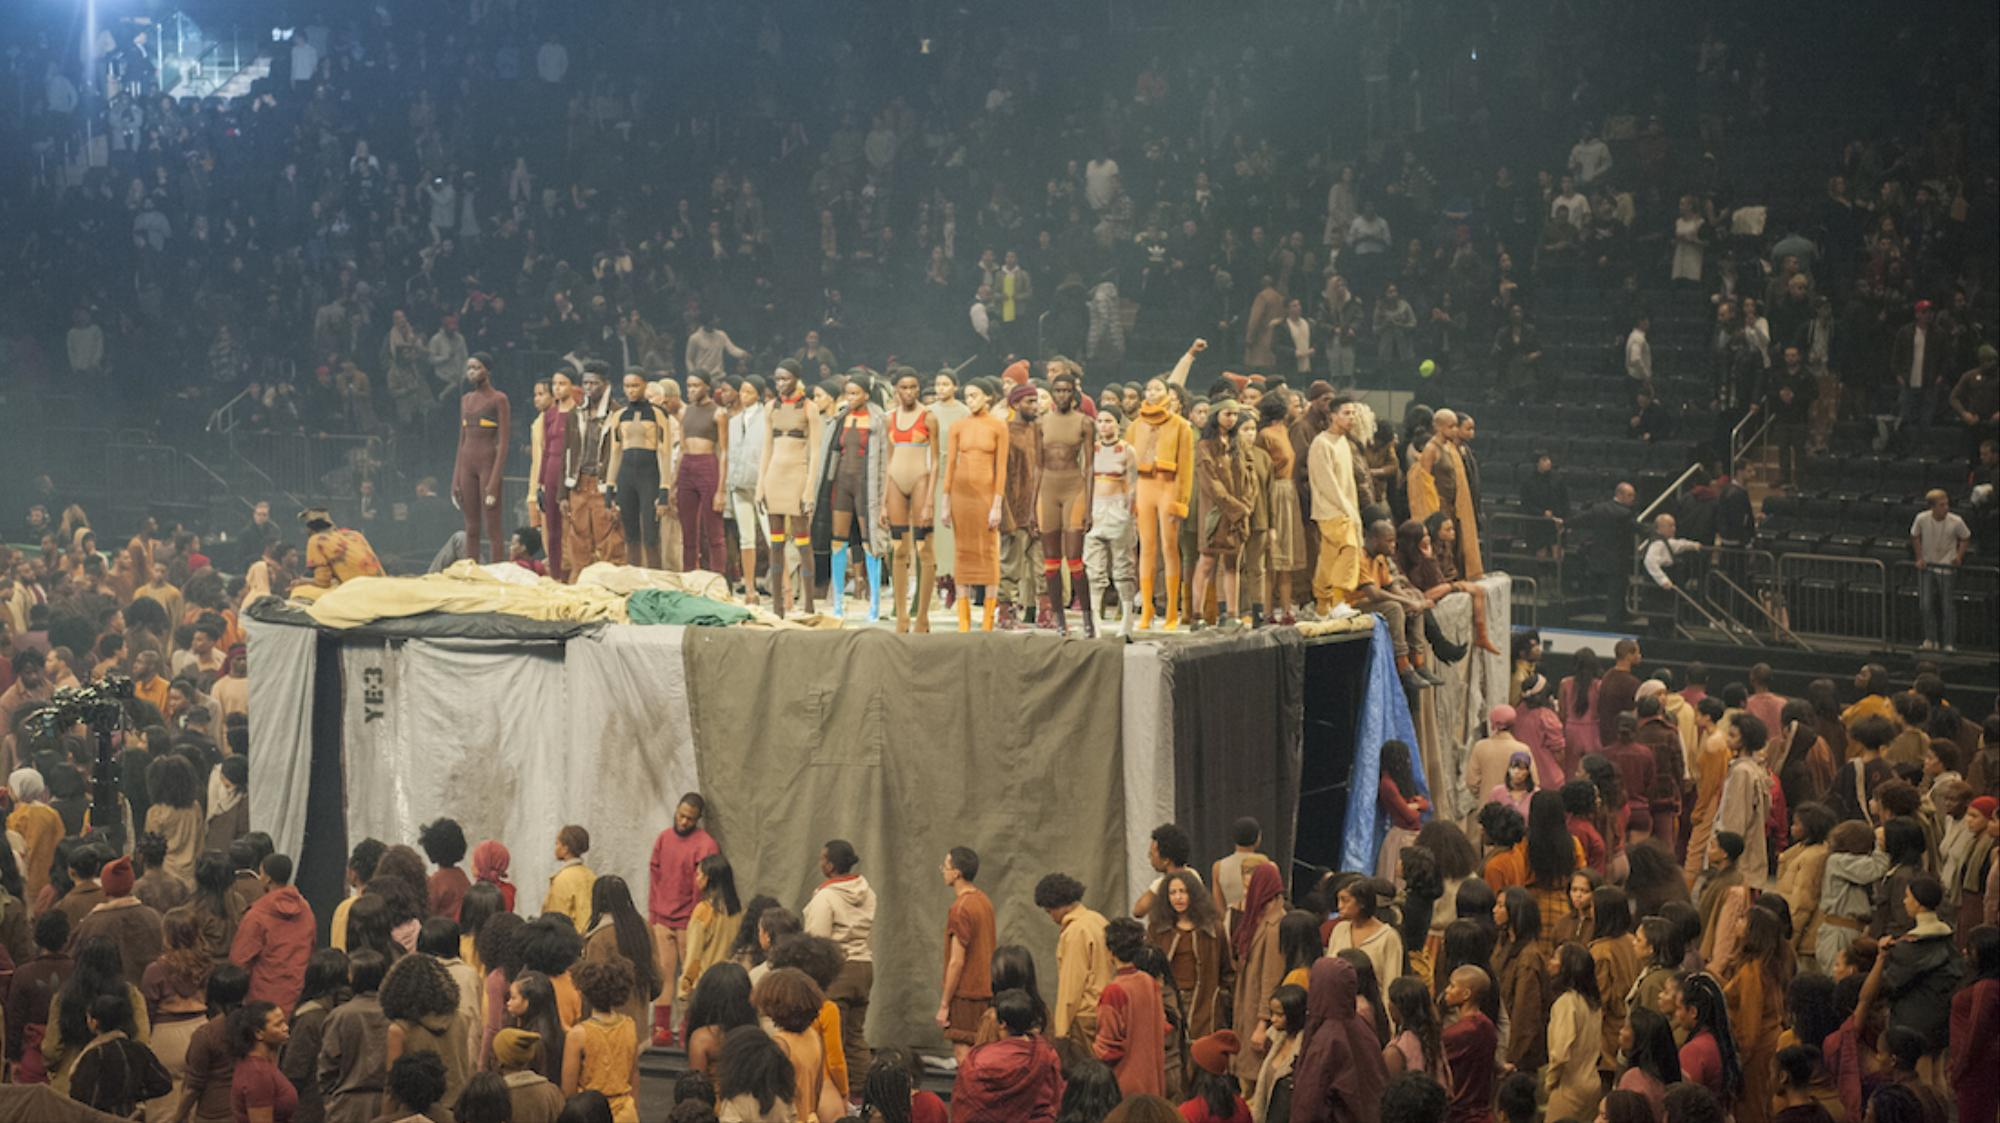 Kanye west spreads his gospel at madison square garden read i d for Madison square garden kanye west